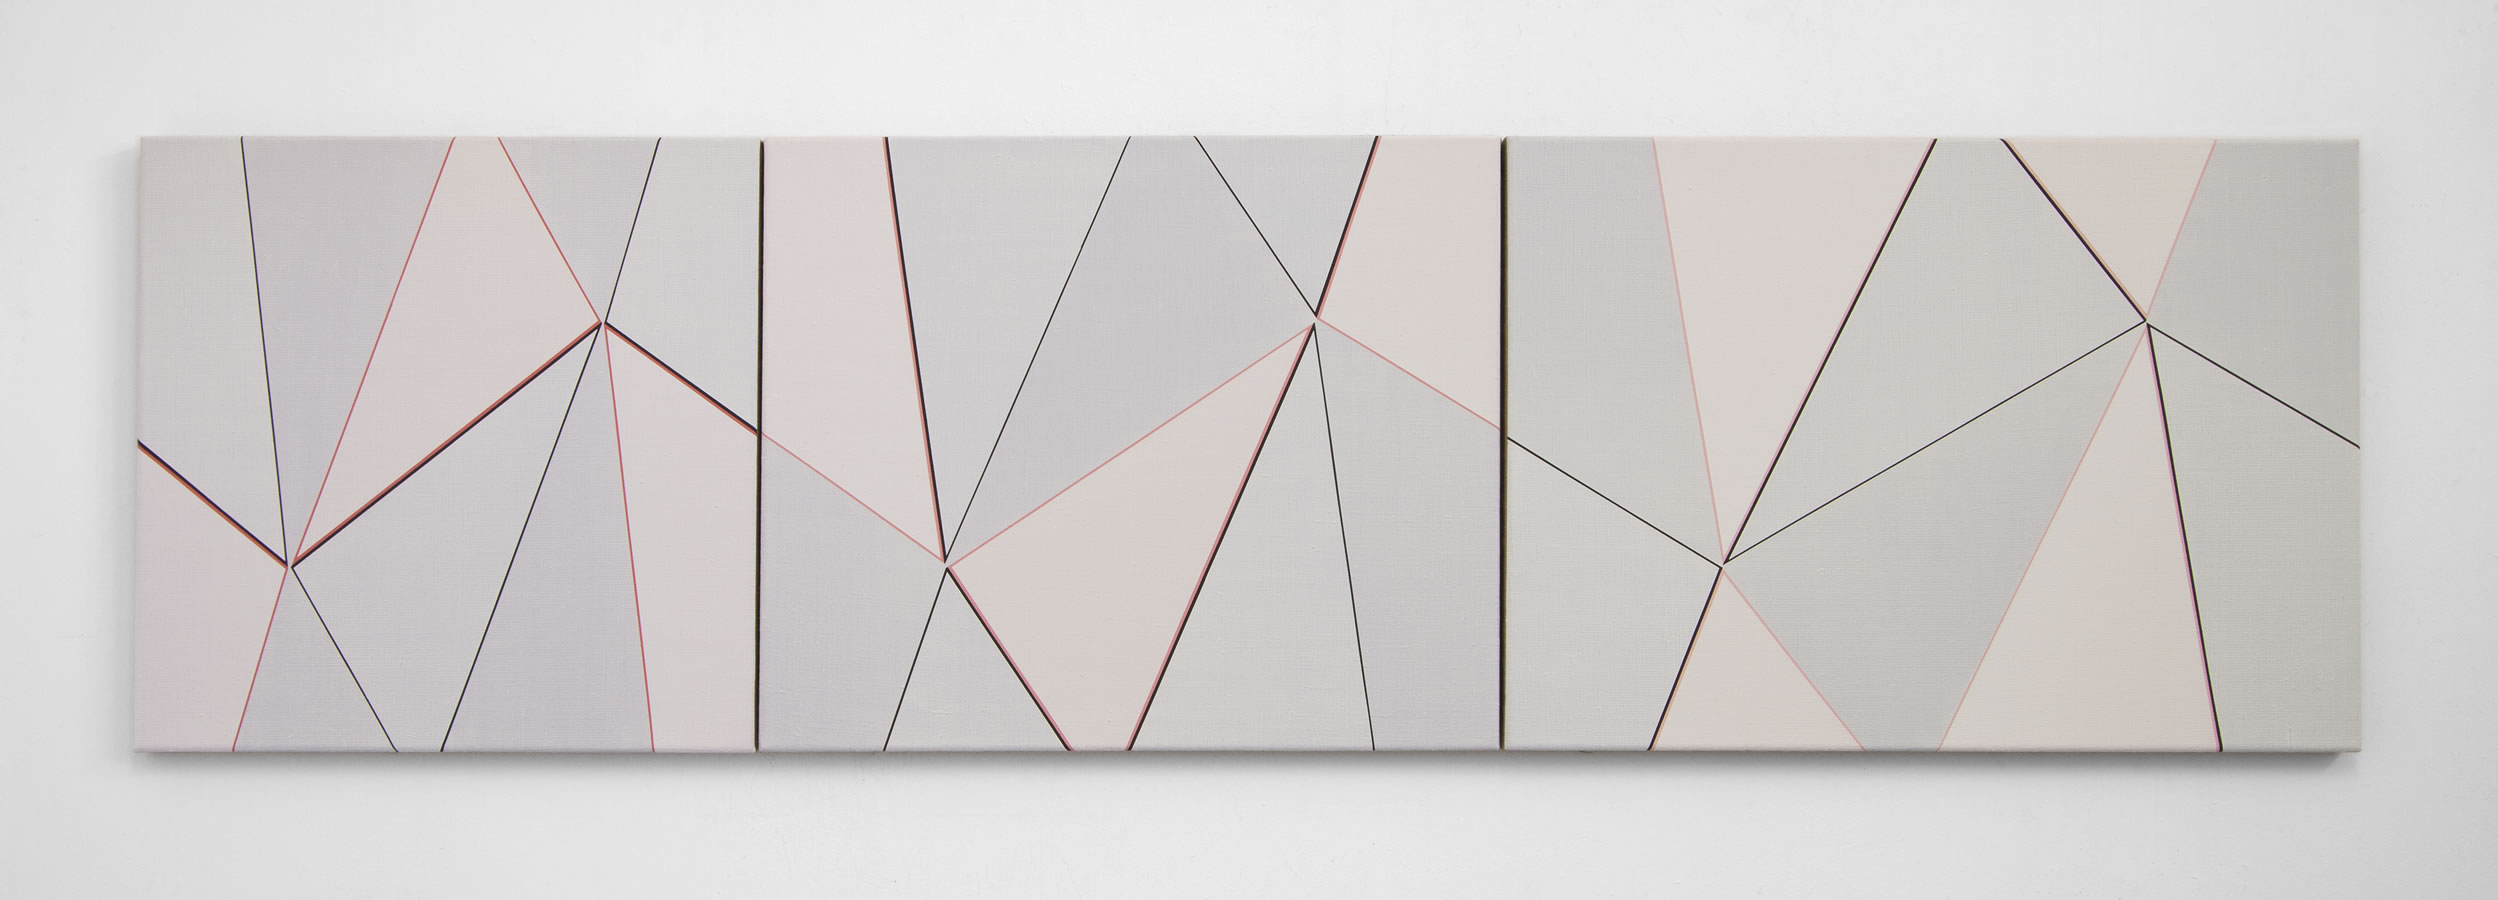 Katrina Blannin, Three Piece Suite Black-Light Red 2014, 50x50 50x60 50x70cm Triptych